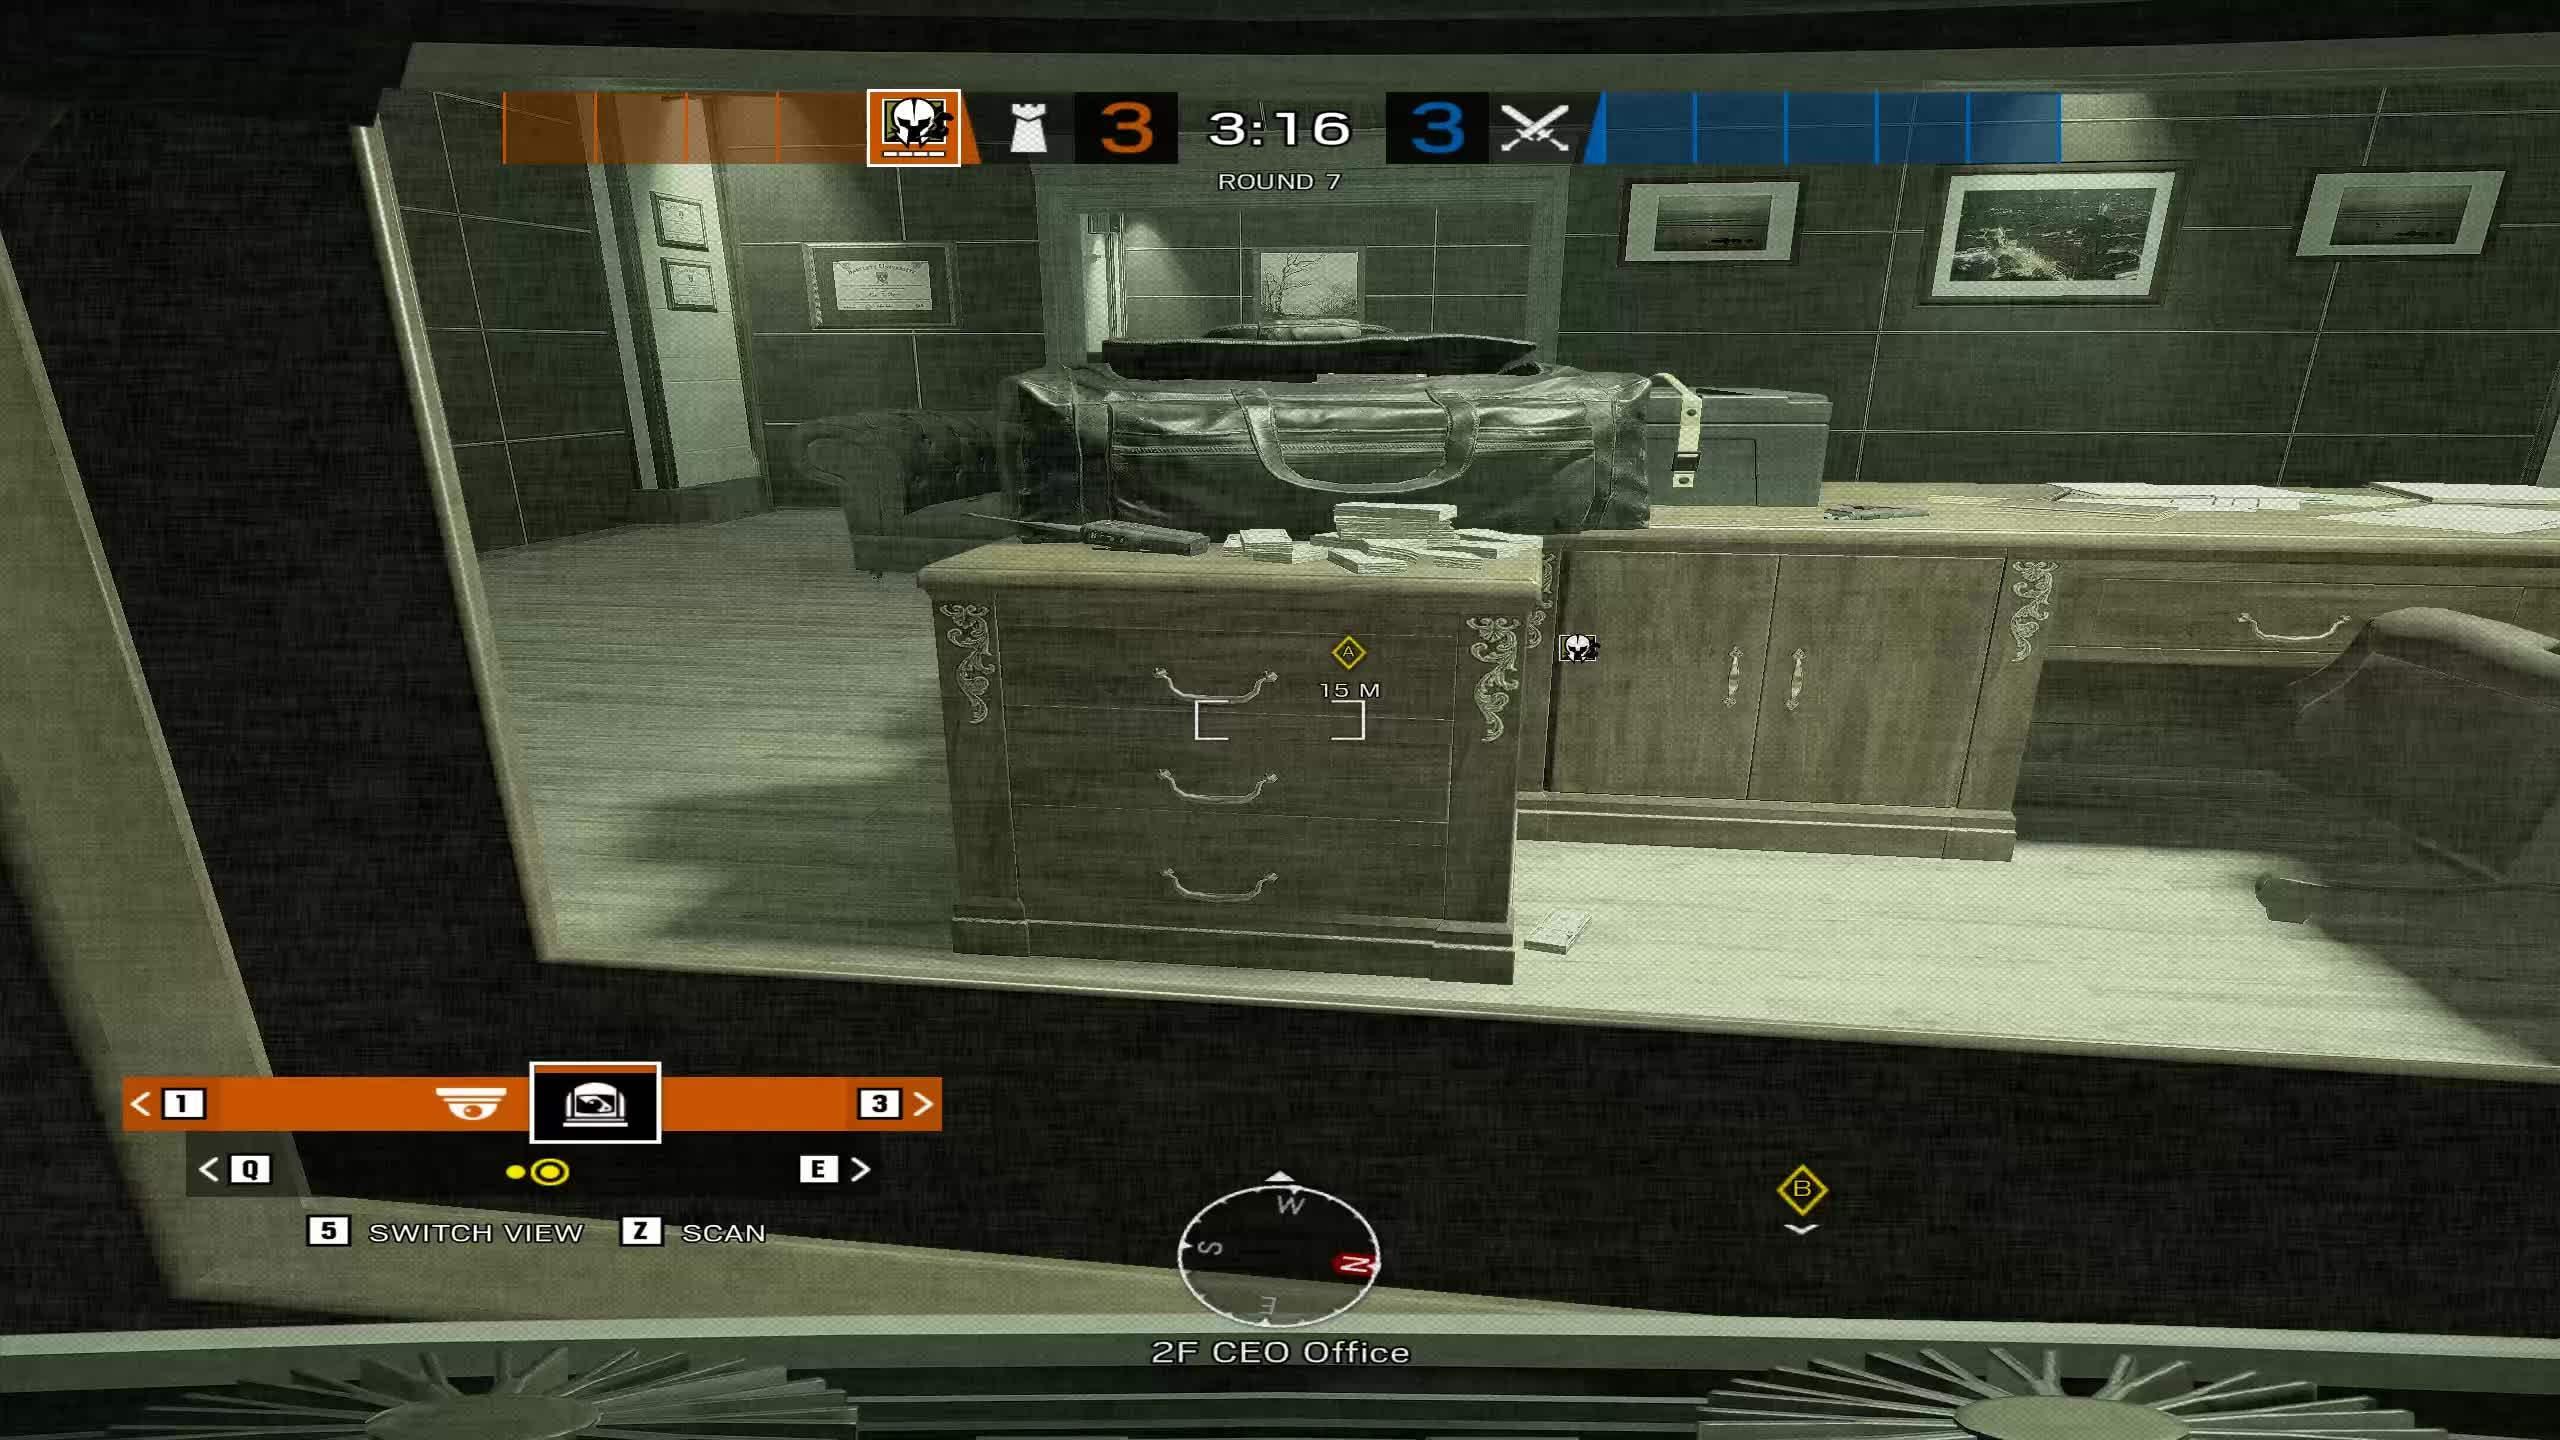 Rainbow Six: Guides - Guide to Playing Maestro on Bank video cover image 21